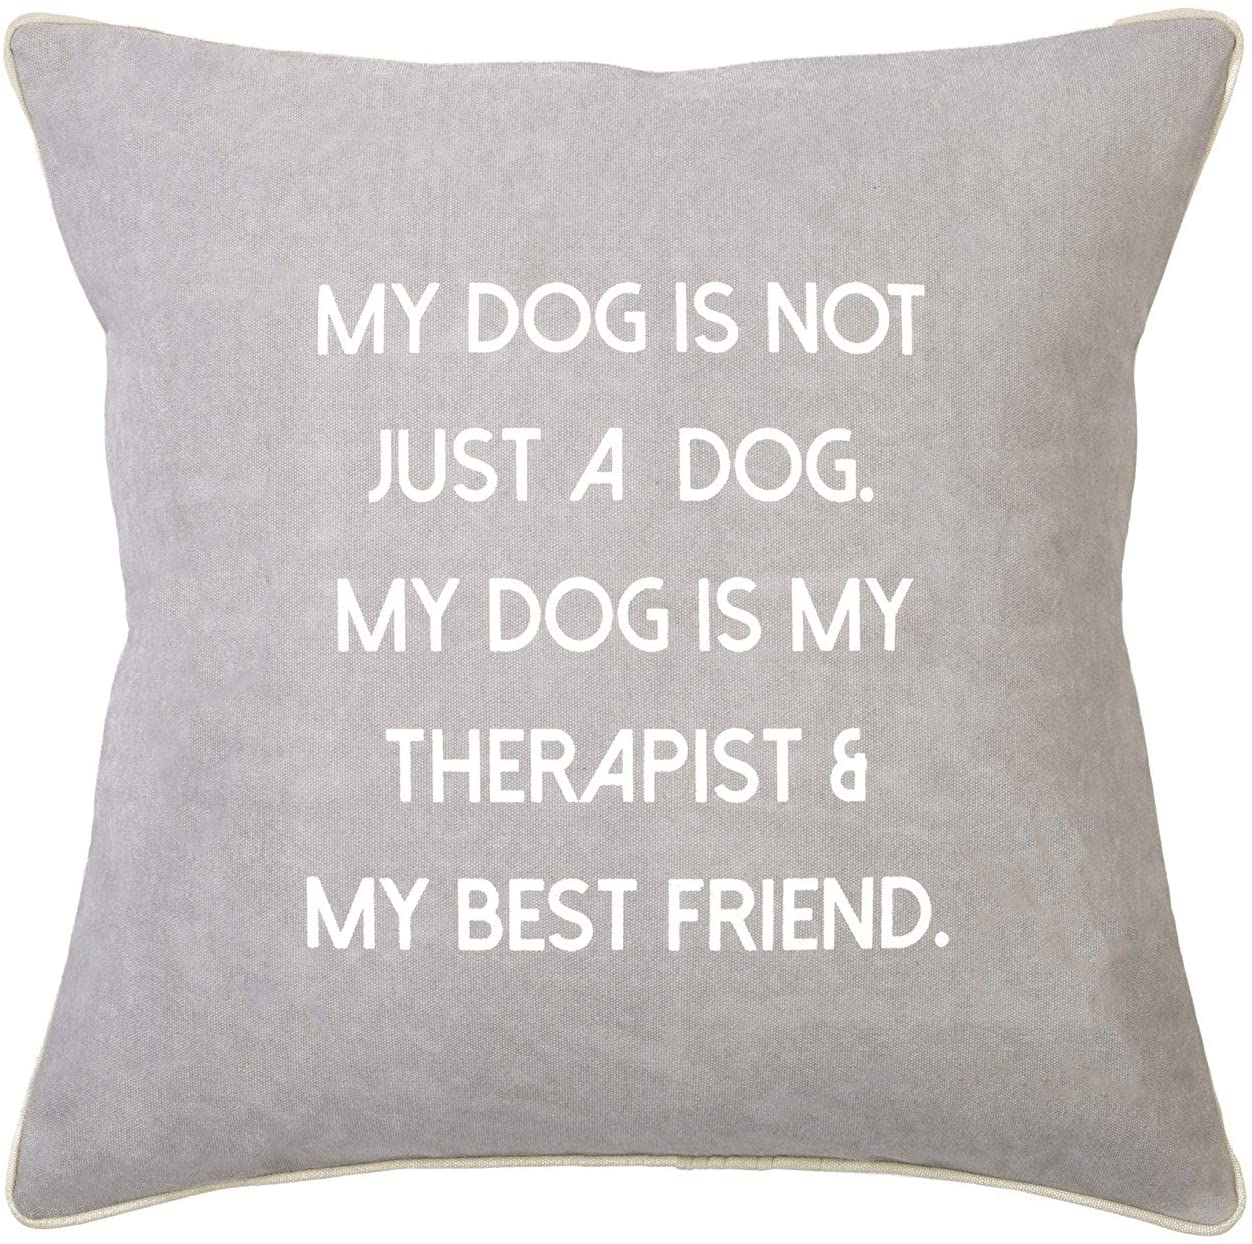 Mona B. Pup Pal Upcycled Decorative Pillow with Insert MH-427